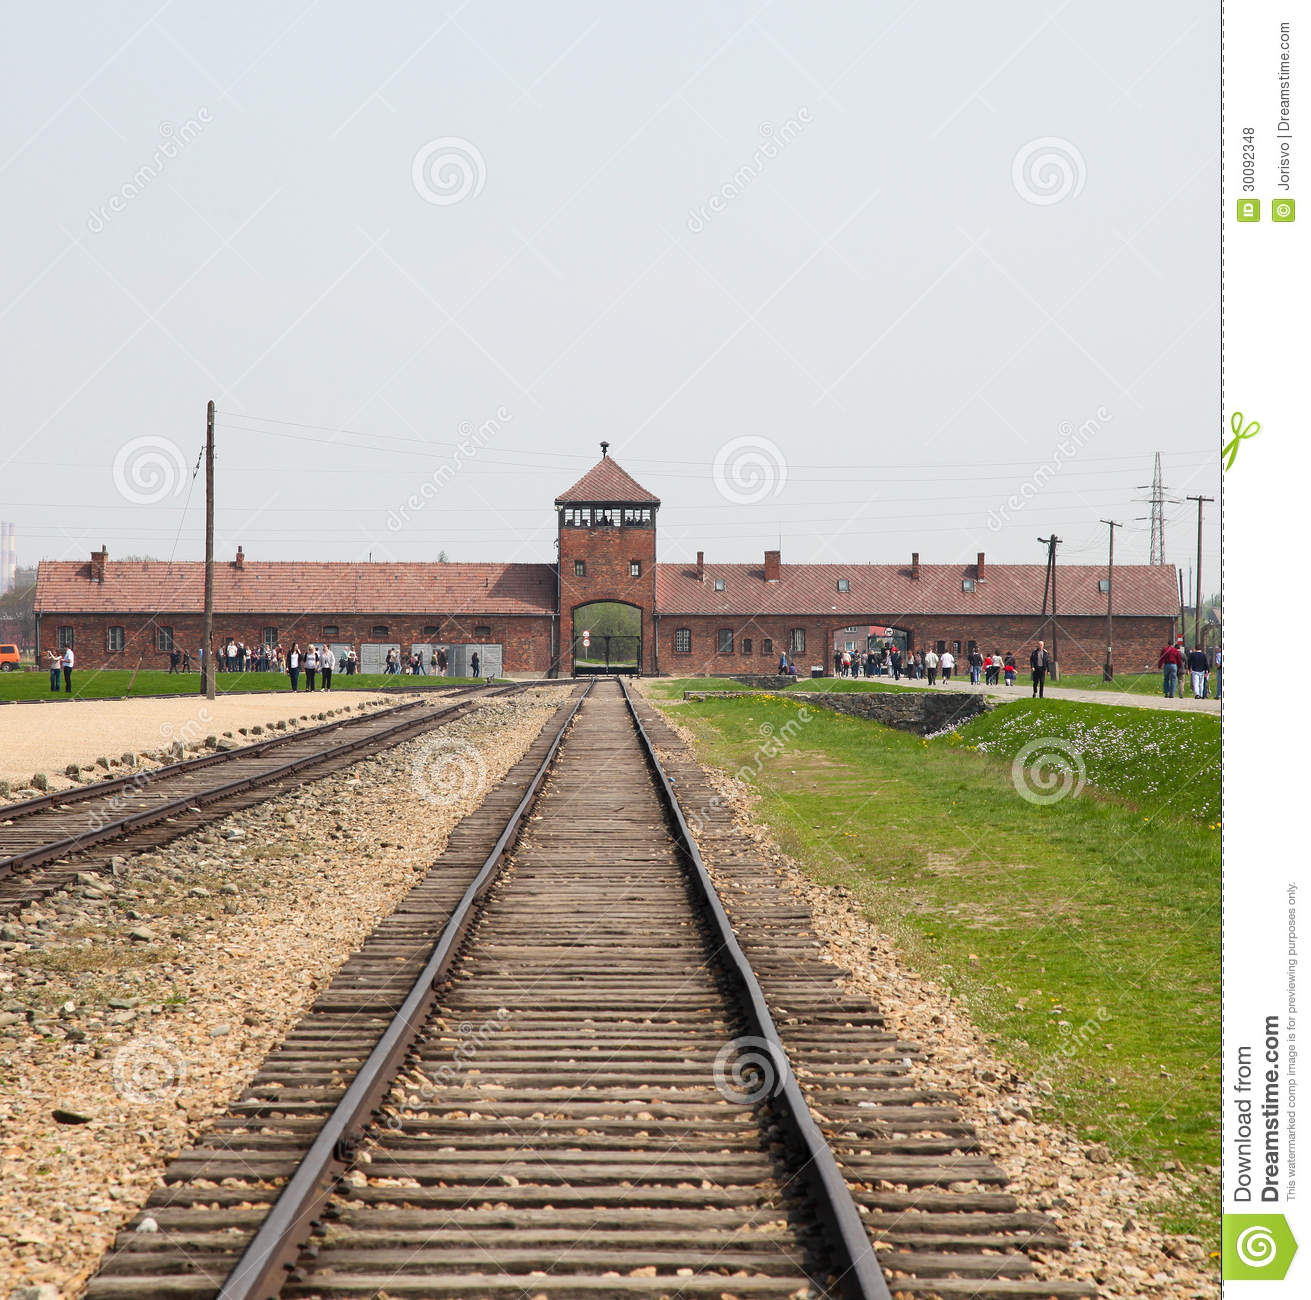 Where Was The Auschwitz Camp Located: Auschwitz Editorial Stock Photo. Image Of Genocide